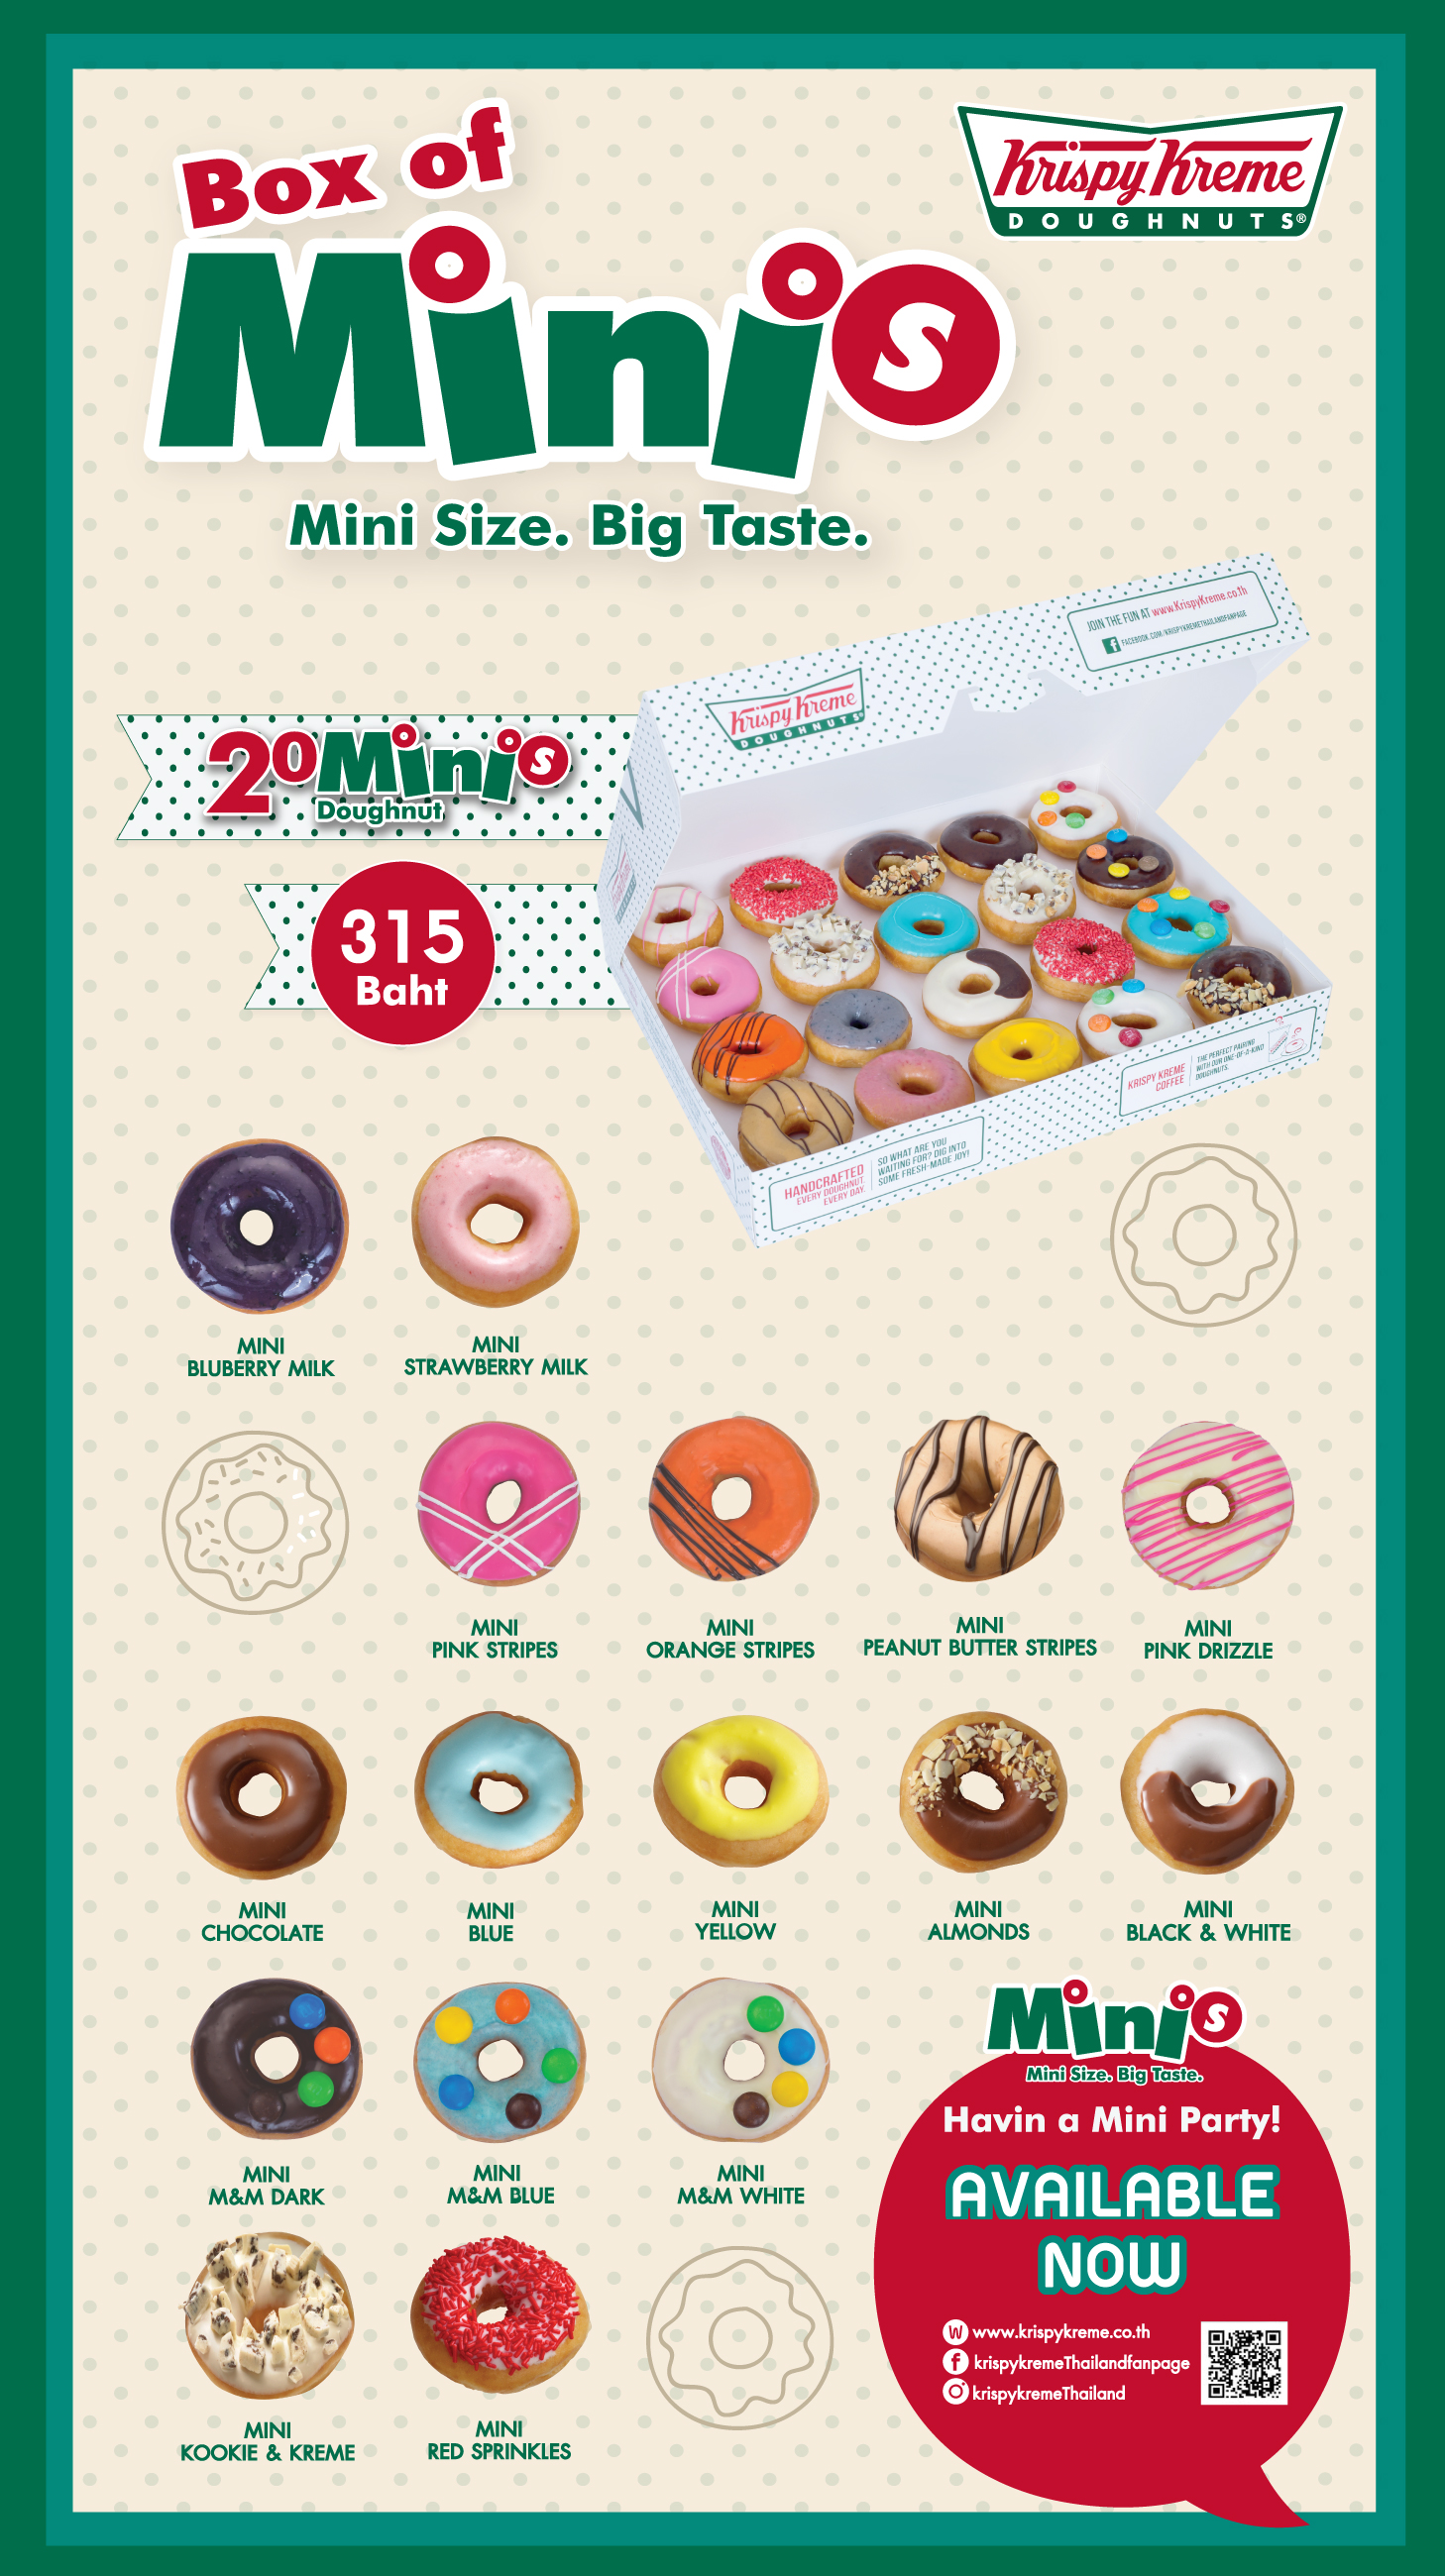 krispykreme_website_minidoughnut_full